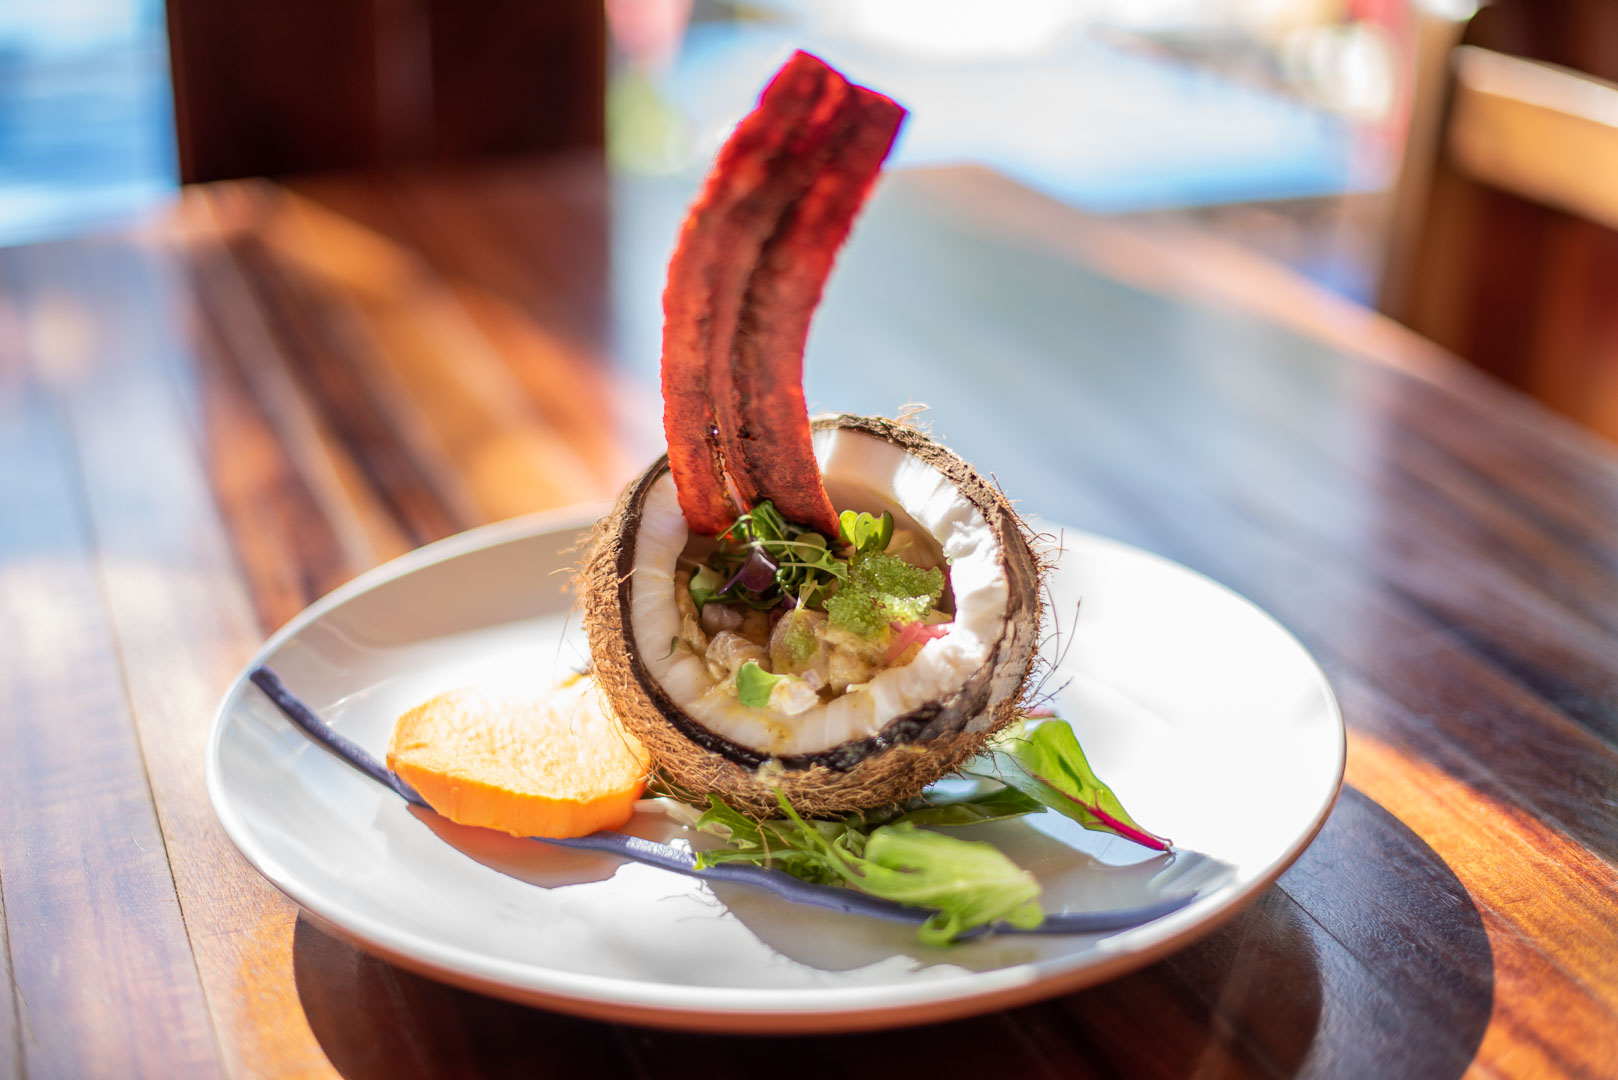 The menu at the breezy, beachy boîte features favorites from an array of sunny ports – from conch fritters and ceviche served in a coconut to an ahi tuna poke tower and jerk chicken. (Image: Courtesy Tortuga)